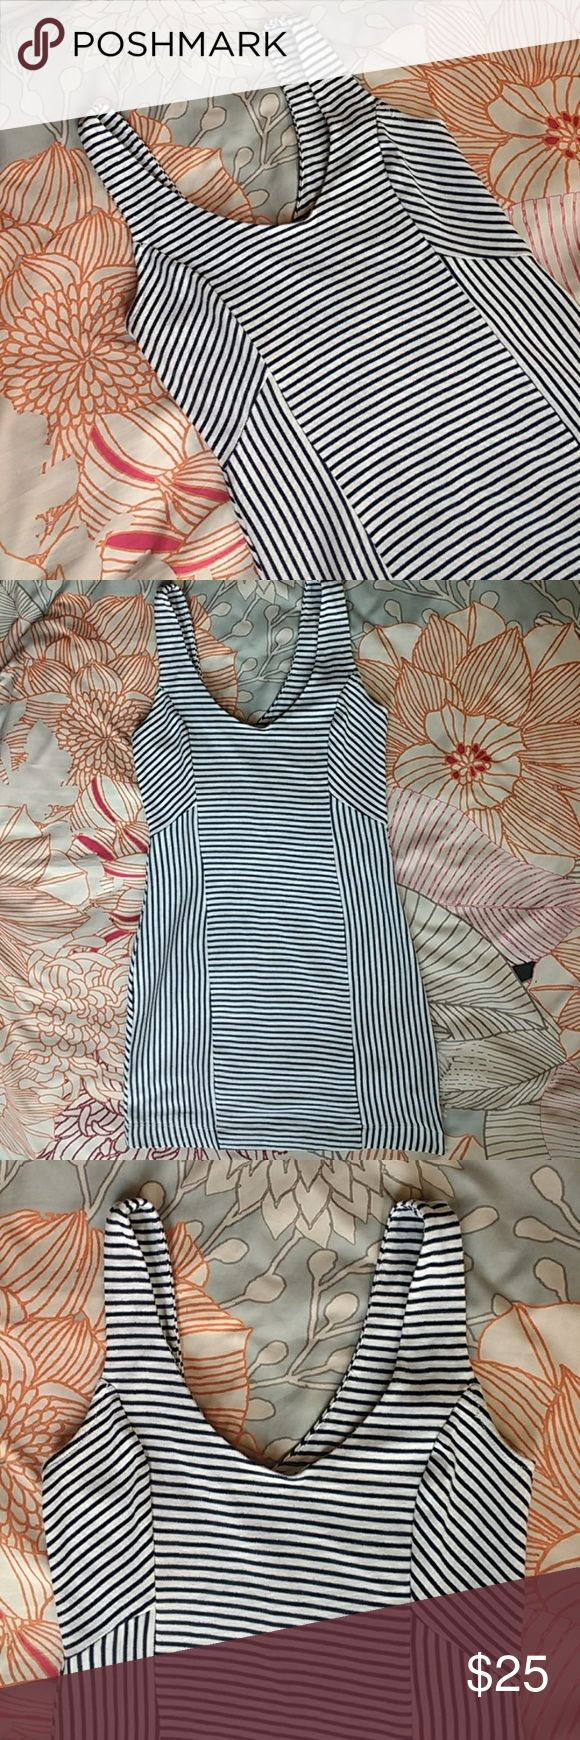 Lush Black and White Striped Bodycon dress sz LG Lush Black and White Striped Bodycon dress sz LG  Garment is in good pre-owned condition. The white is not super bright and can look off white in different light. Cotton/polyester blend. Lush Dresses Mini